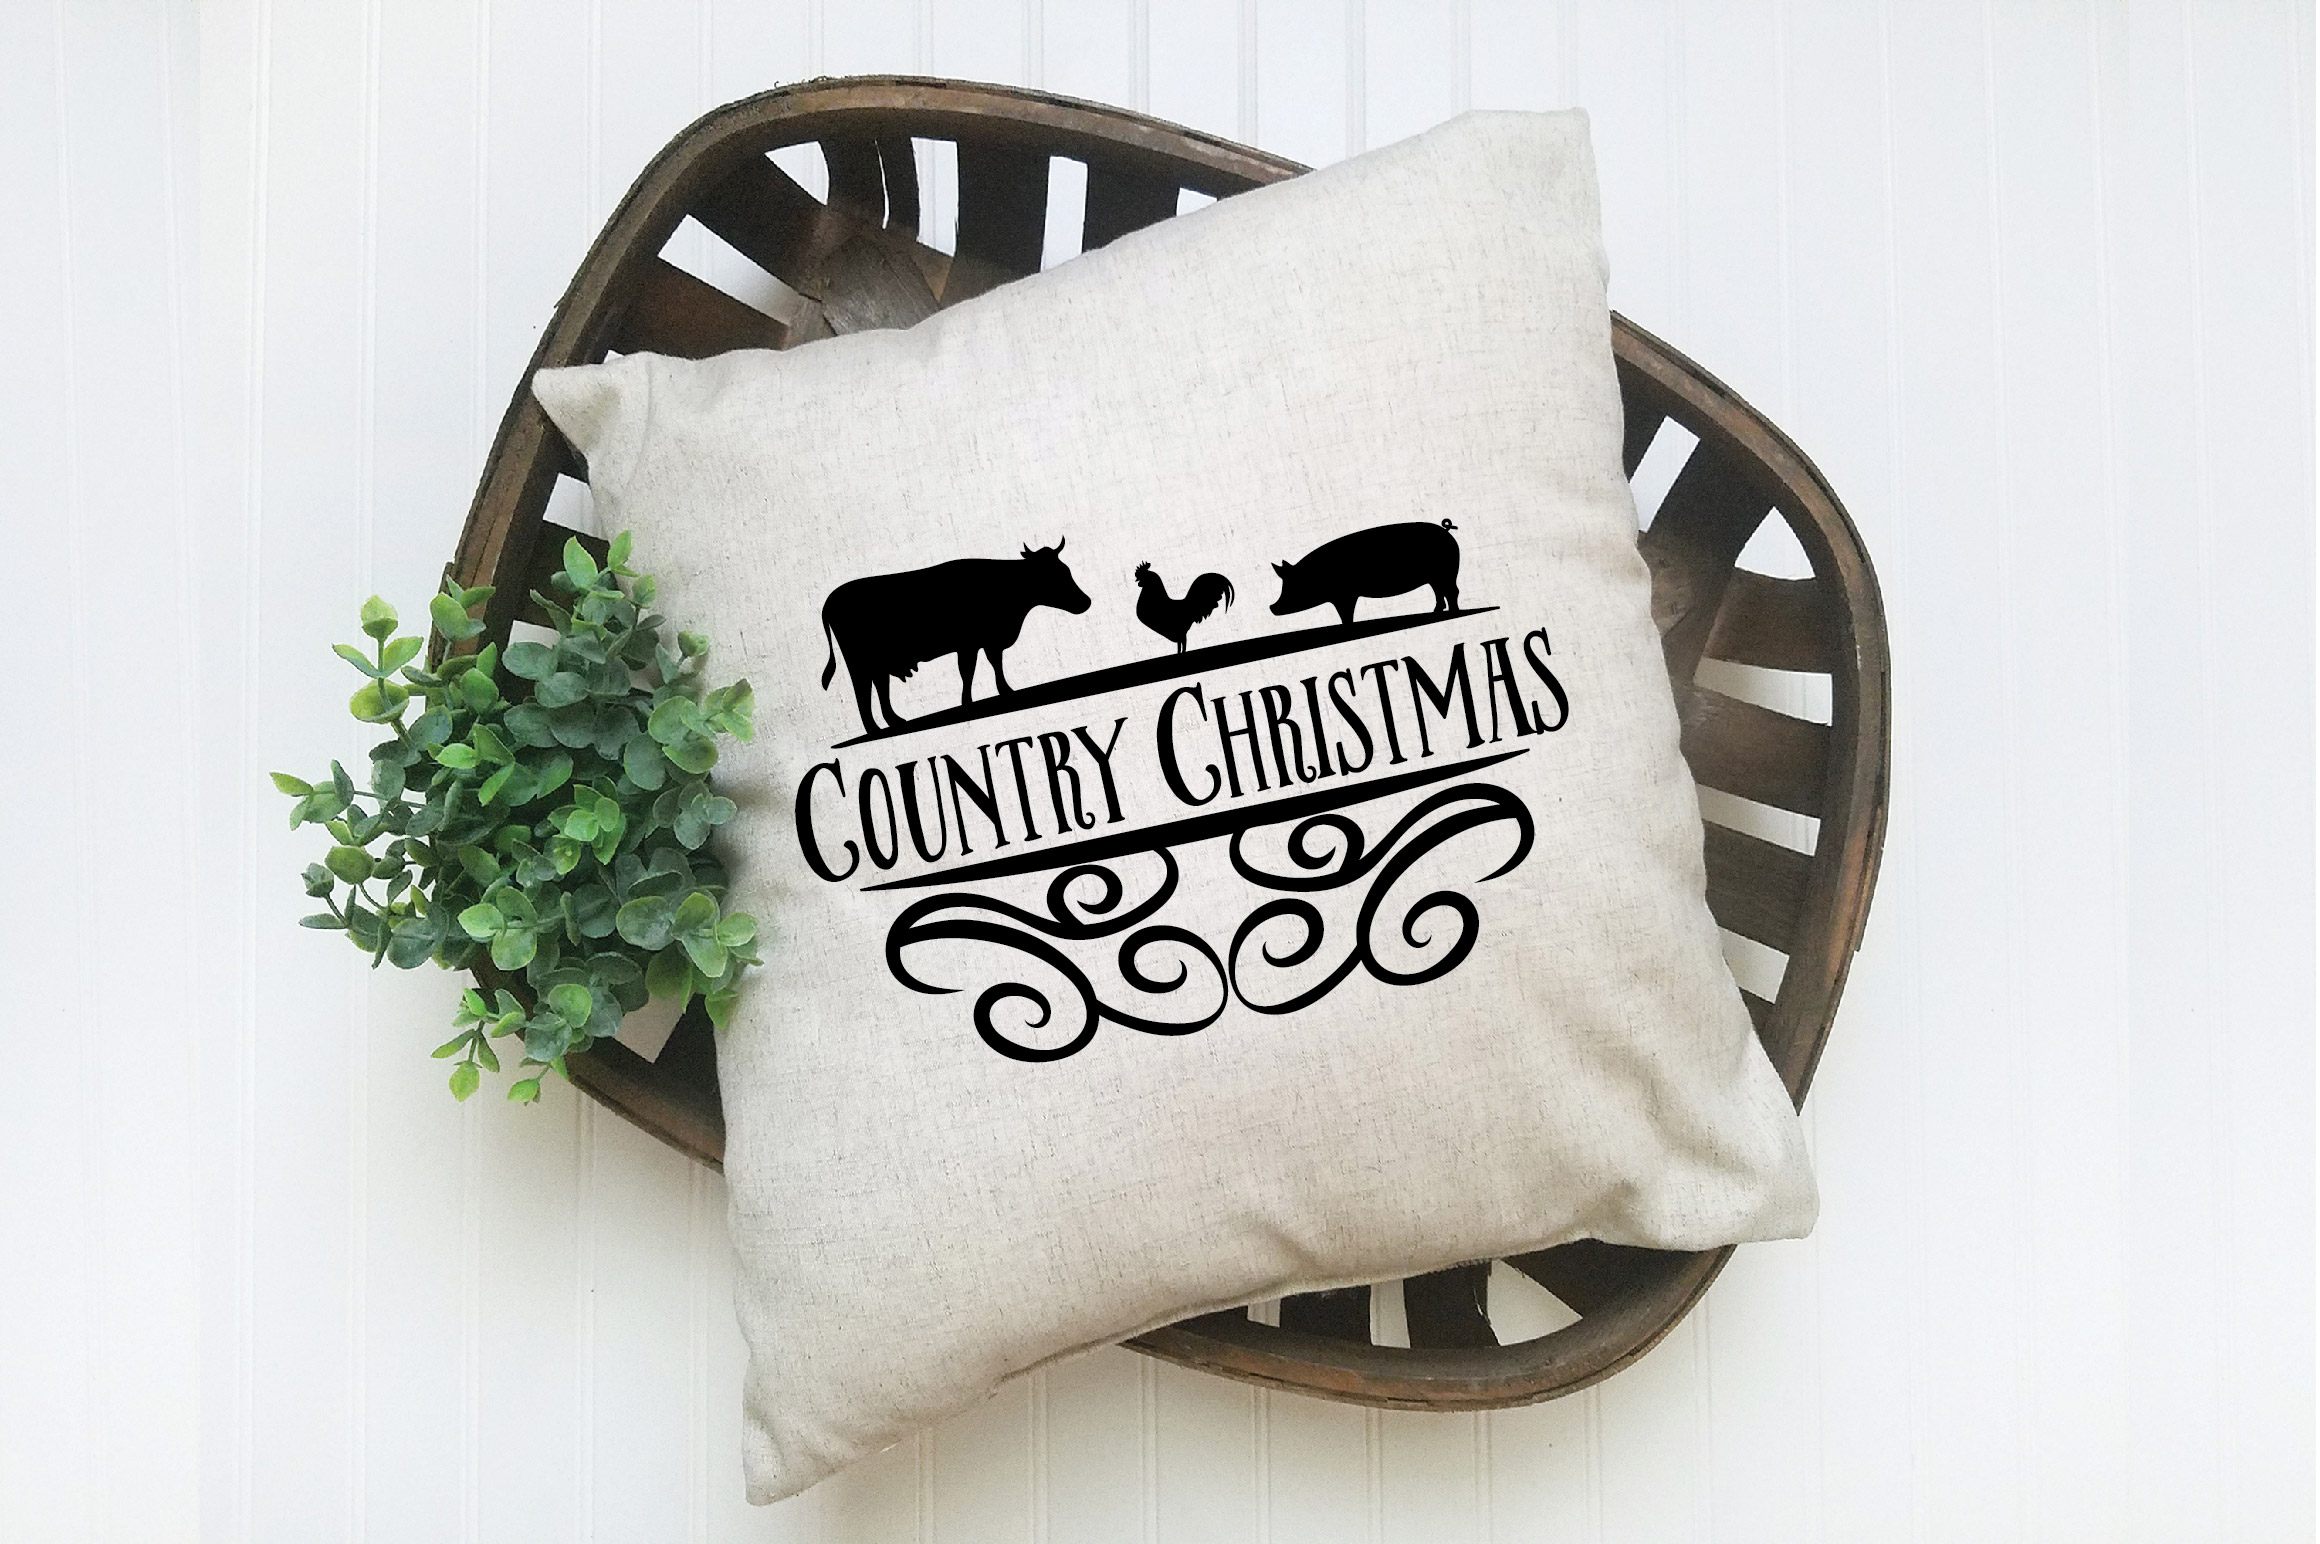 Christmas SVG Cut File - Country Christmas SVG DXF PNG EPS example image 7